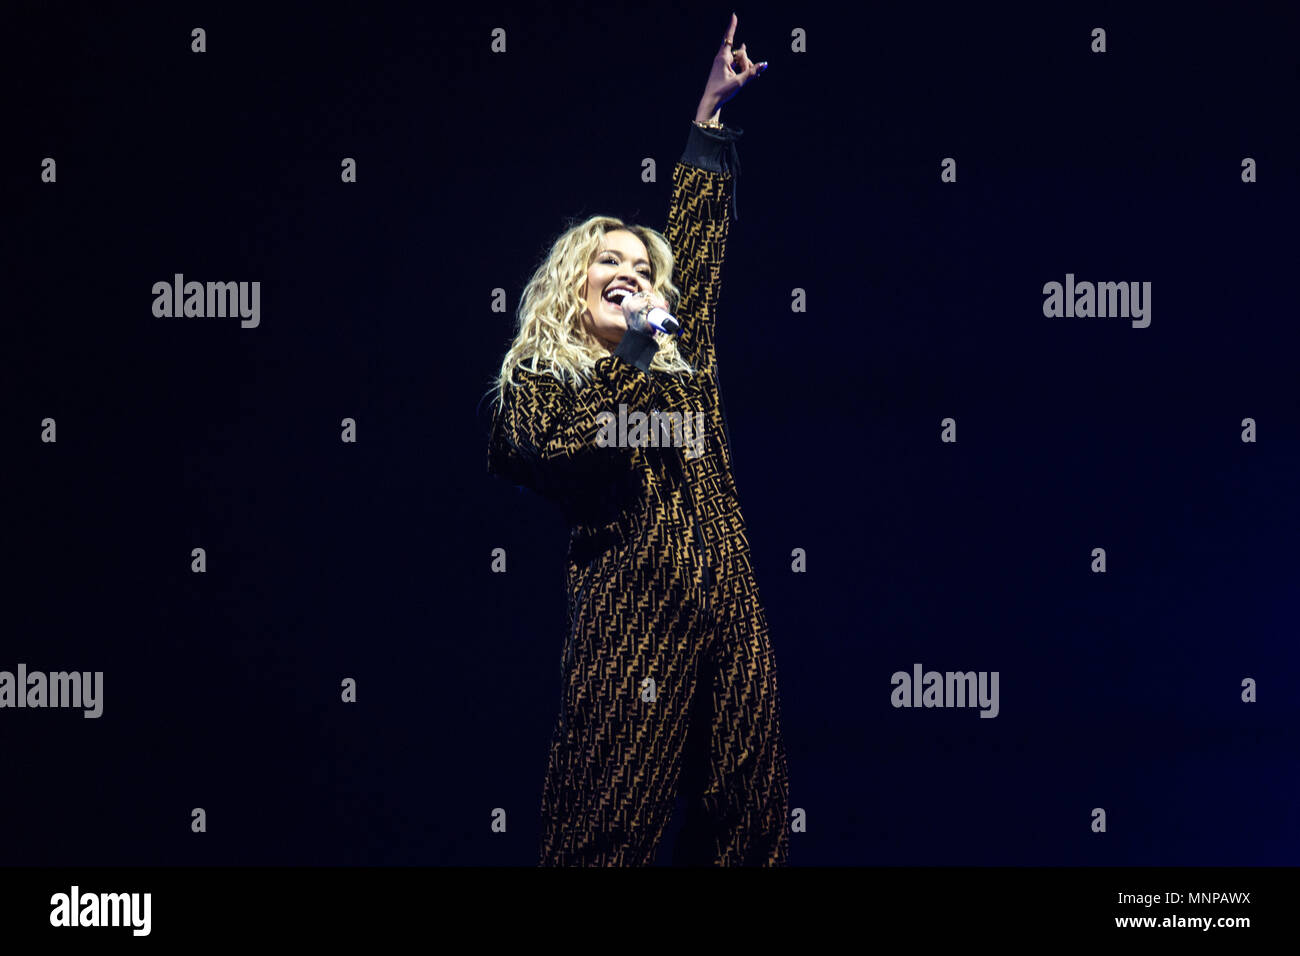 London, UK, 18 May 2018. Rita Ora performing 02 Academy Brixton, London - 18 May 2018 Credit: Tom Rose/Alamy Live News Stock Photo